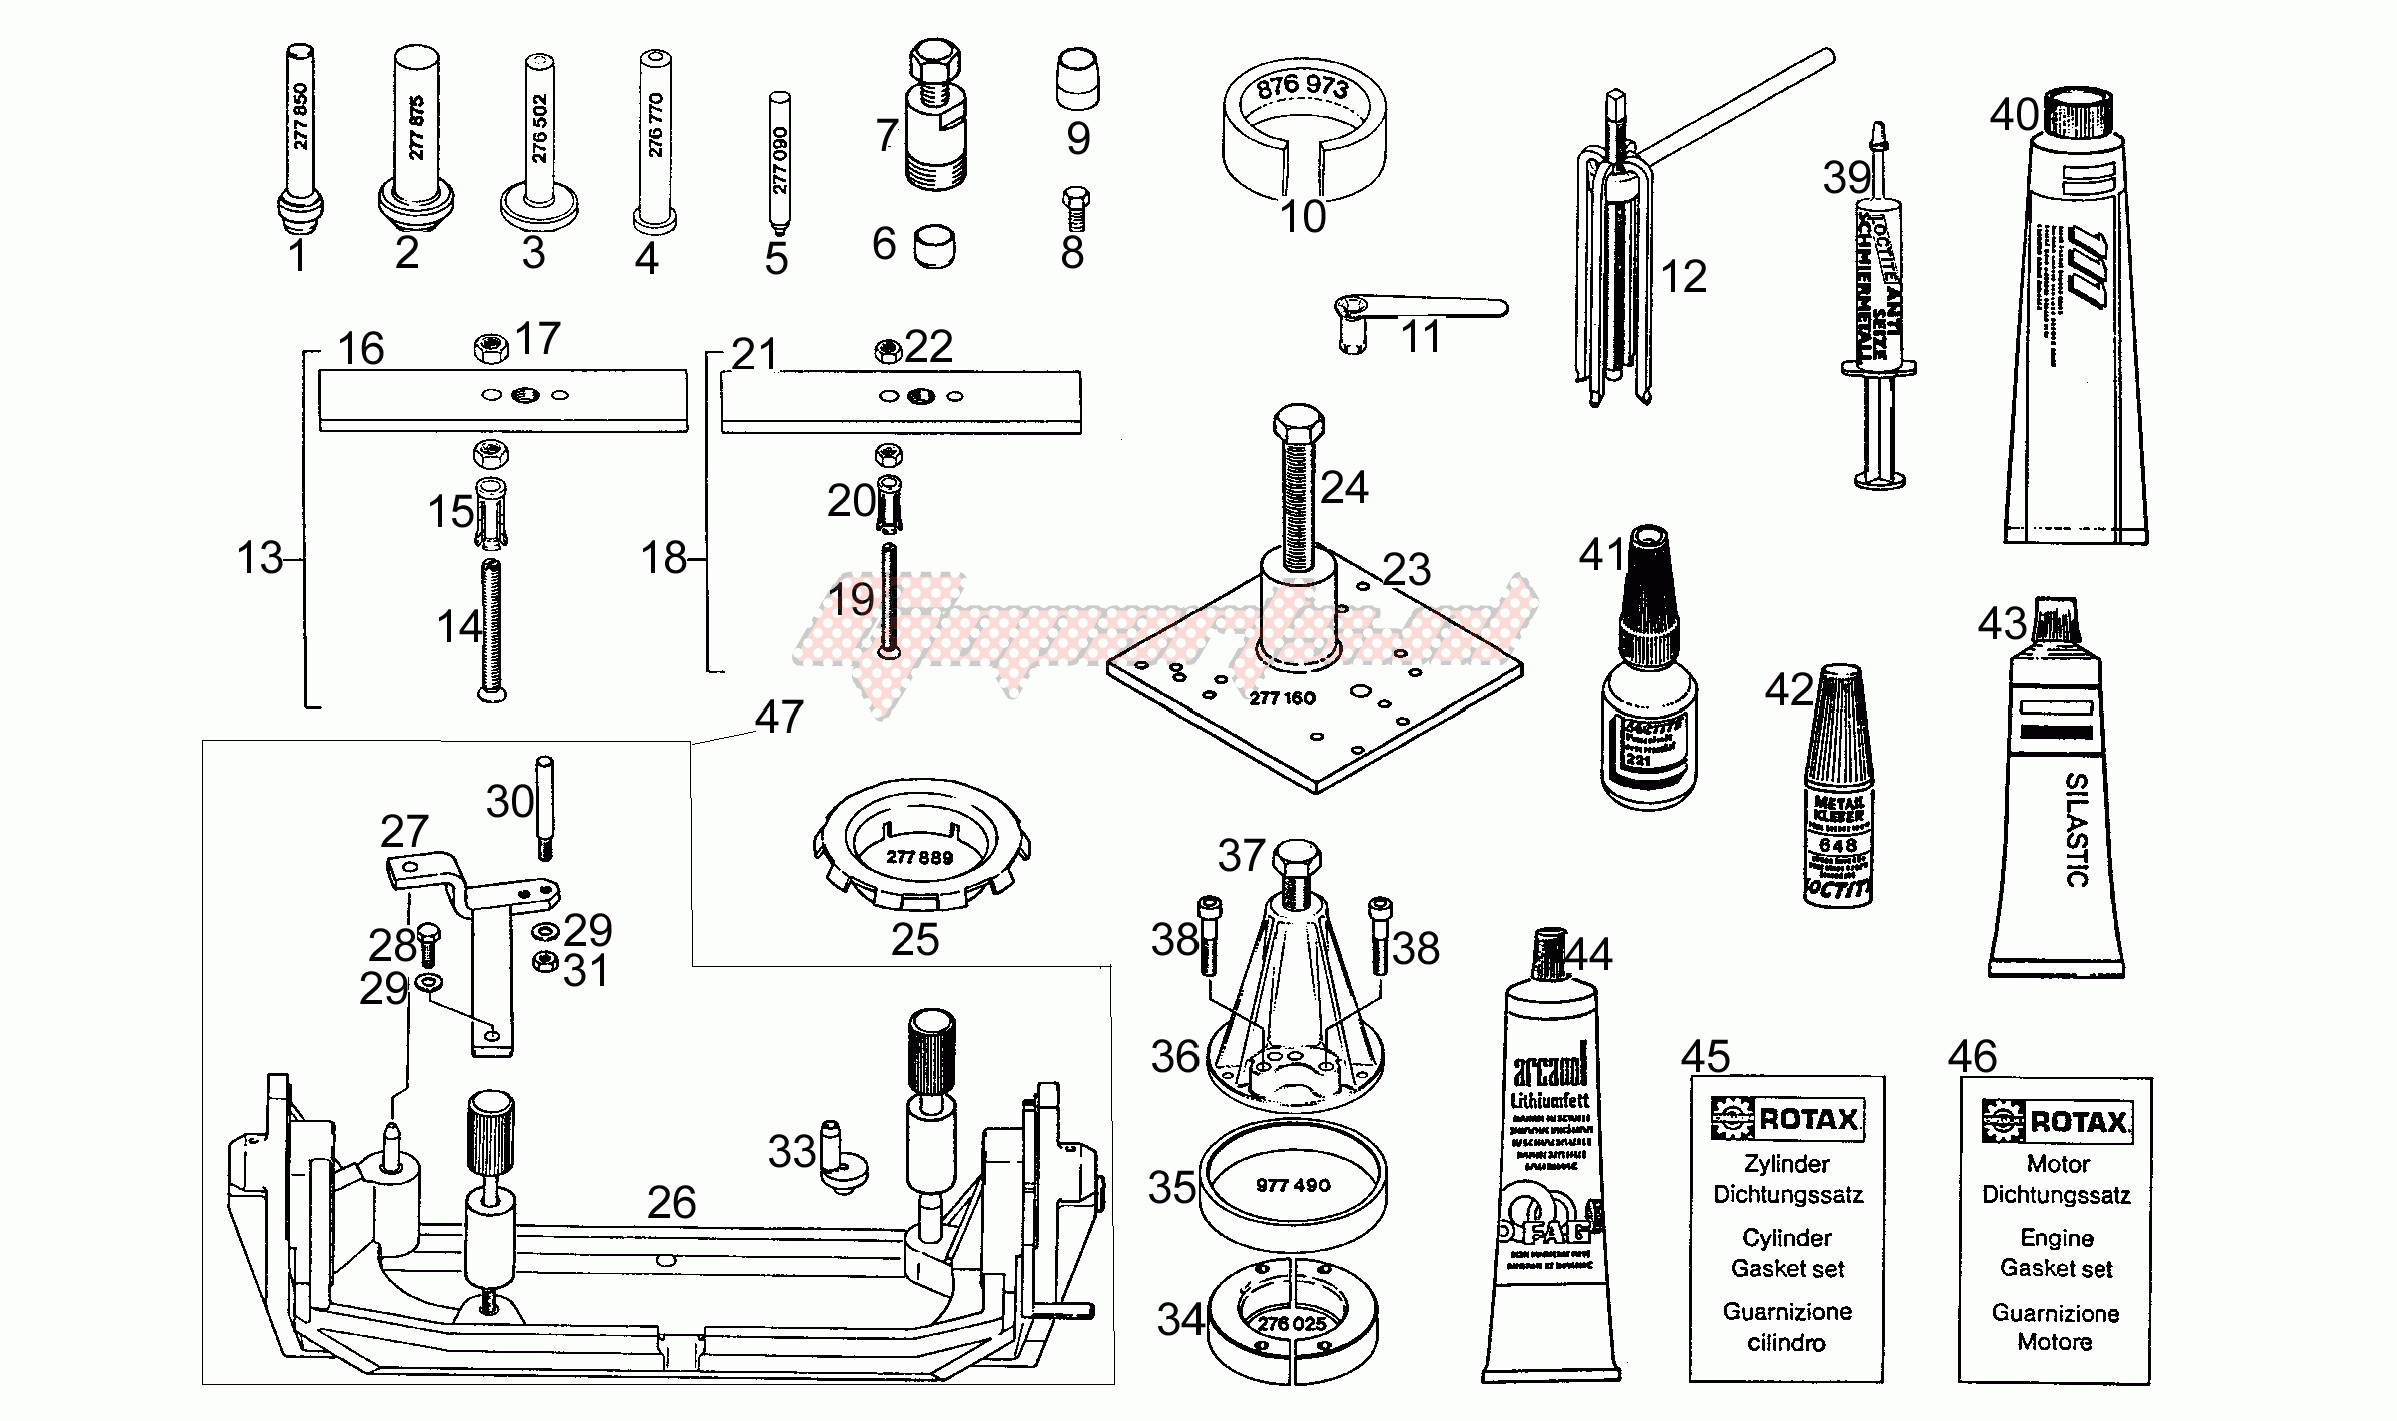 Engine-Special tools